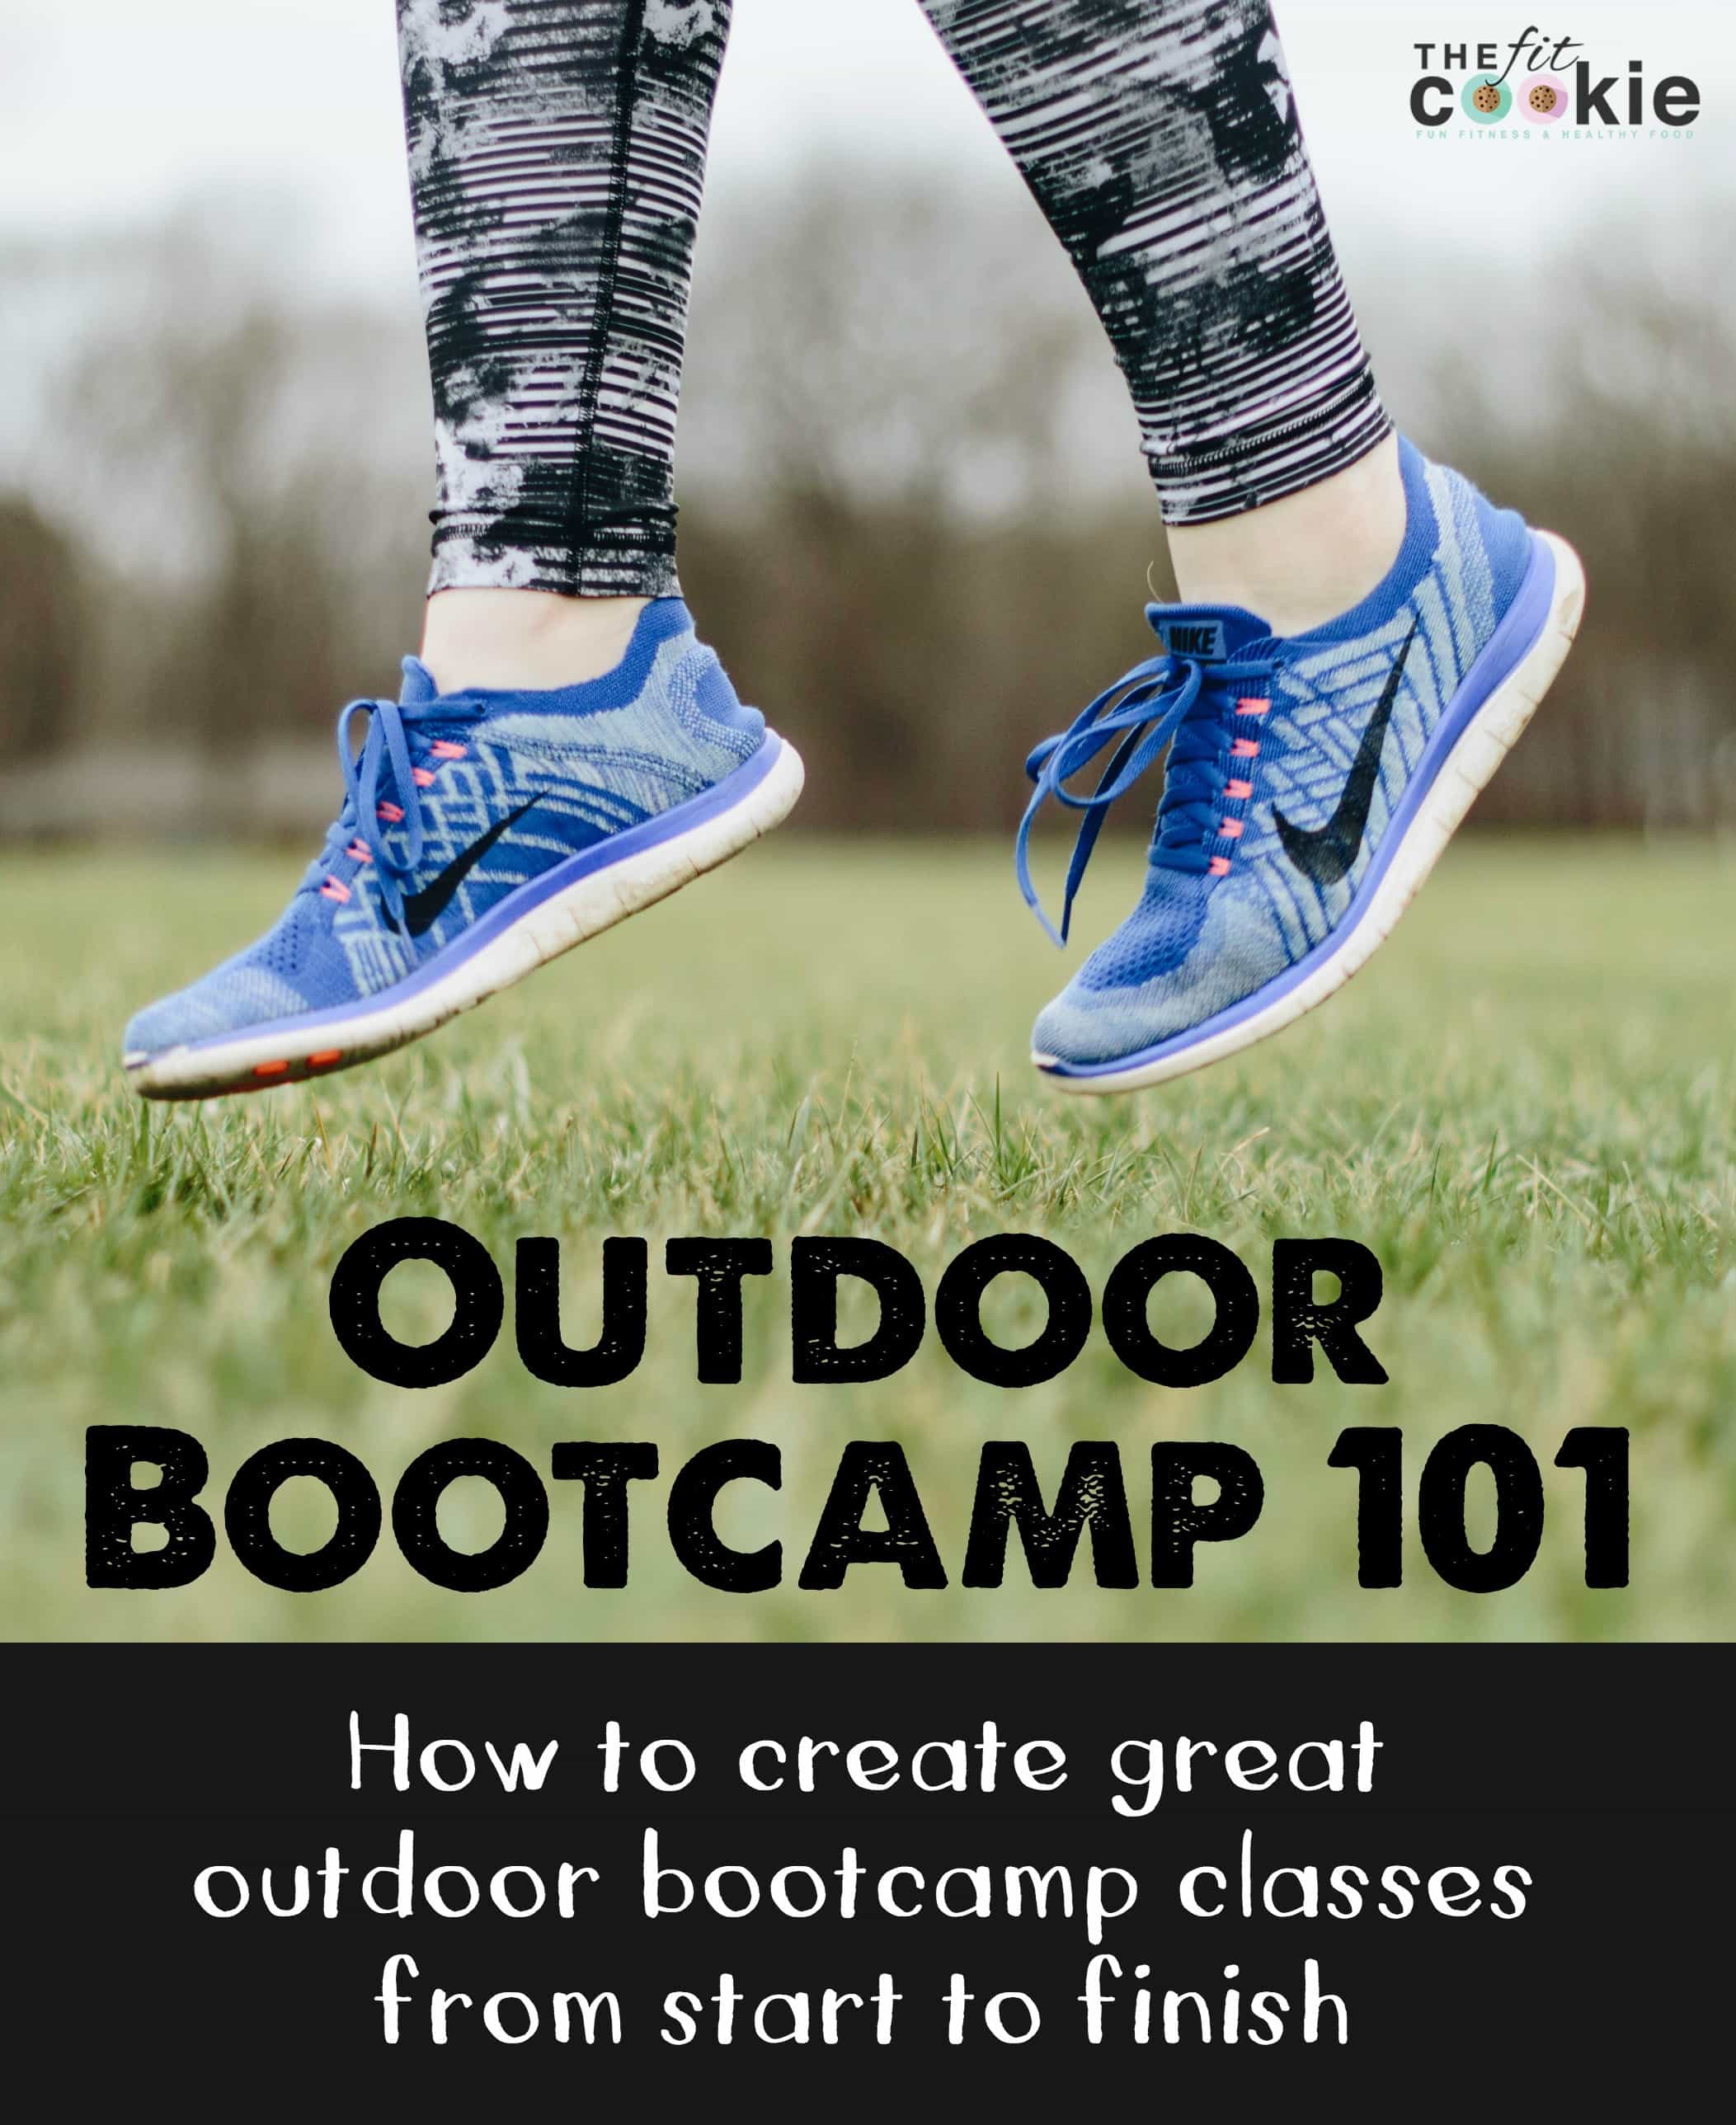 If you're a fitness pro and have thought about starting your own outdoor bootcamp but aren't sure where to start, check out my Outdoor Bootcamp 101! From nuts to bolts, this guide has all the info you need to get started - @TheFitCookie